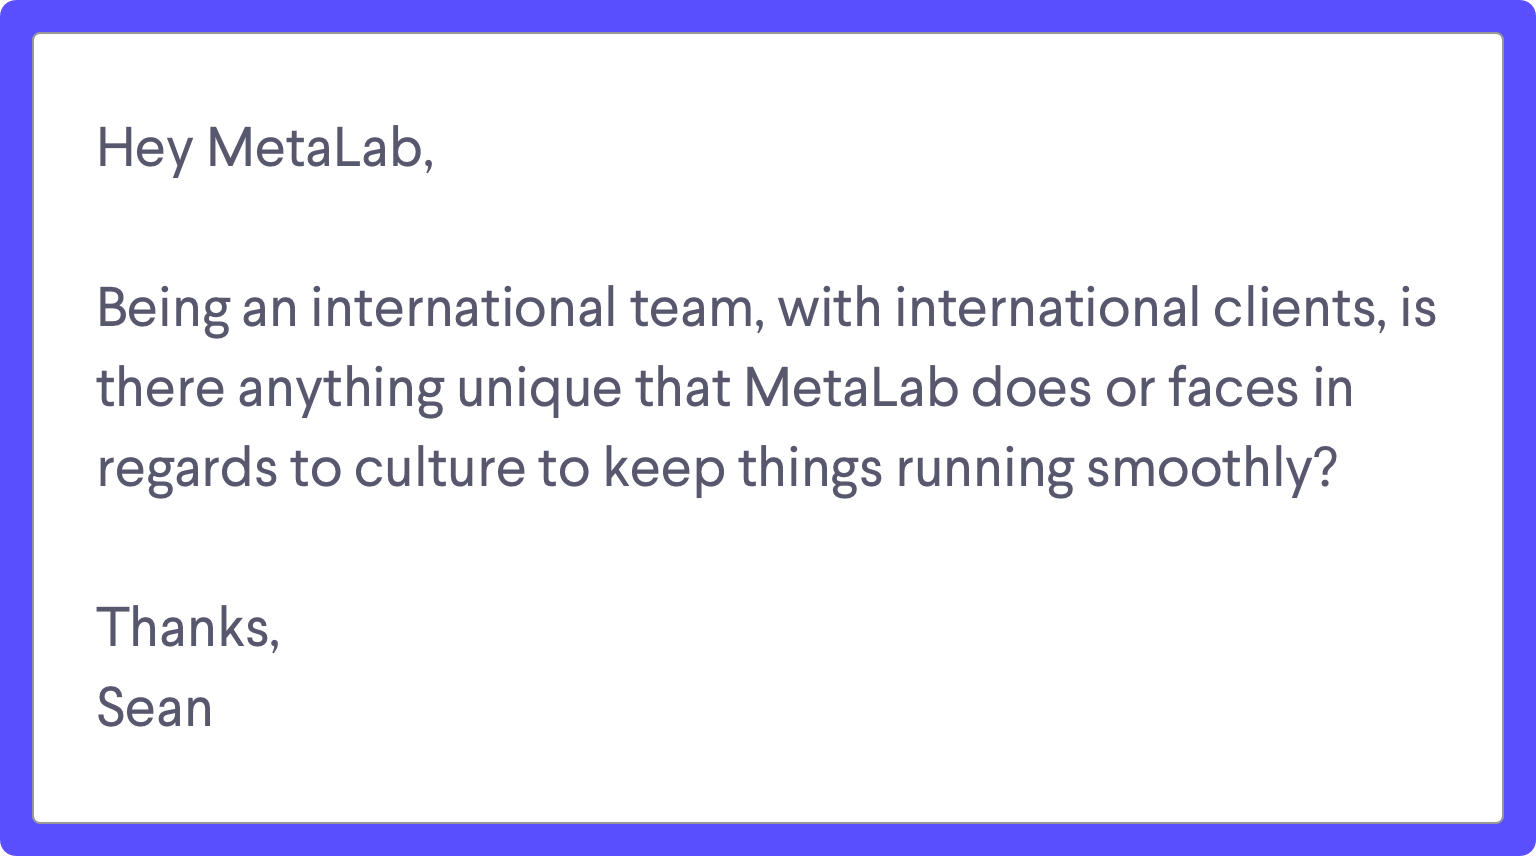 Ask MetaLab Anything submission: Hey MetaLab, Being an international team, with international clients, is there anything unique about MetaLab's culture that keeps things running smoothly? Thanks, Sean